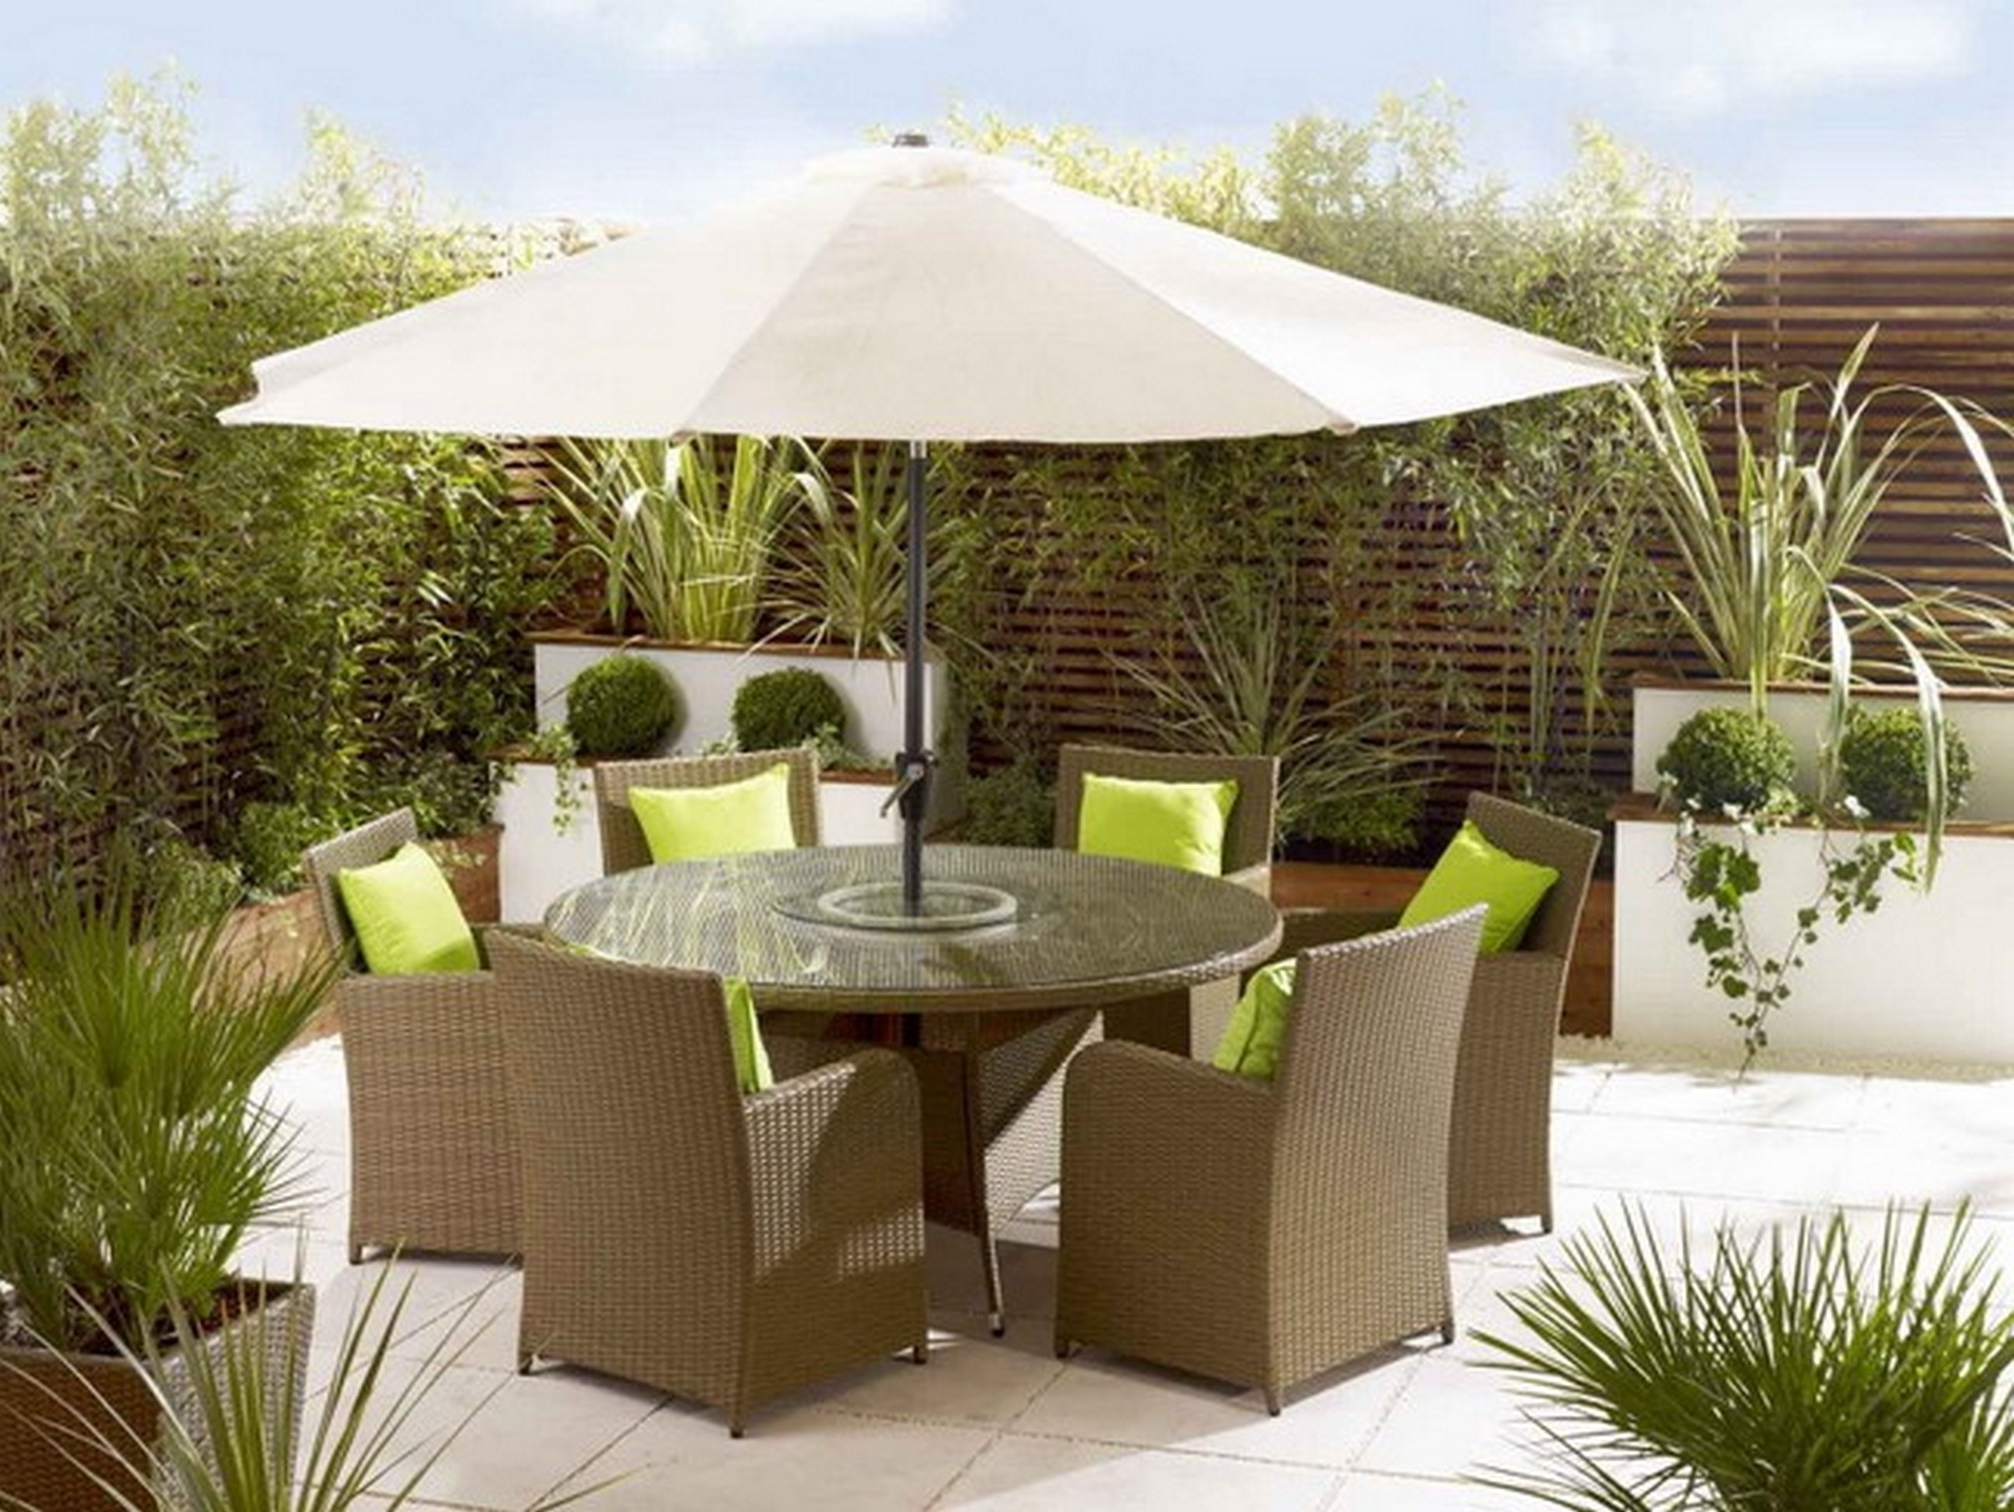 Patio Sets With Umbrellas In Well Known The Patio Table Umbrella For Comfort Gathering — Mistikcamping Home (View 14 of 20)